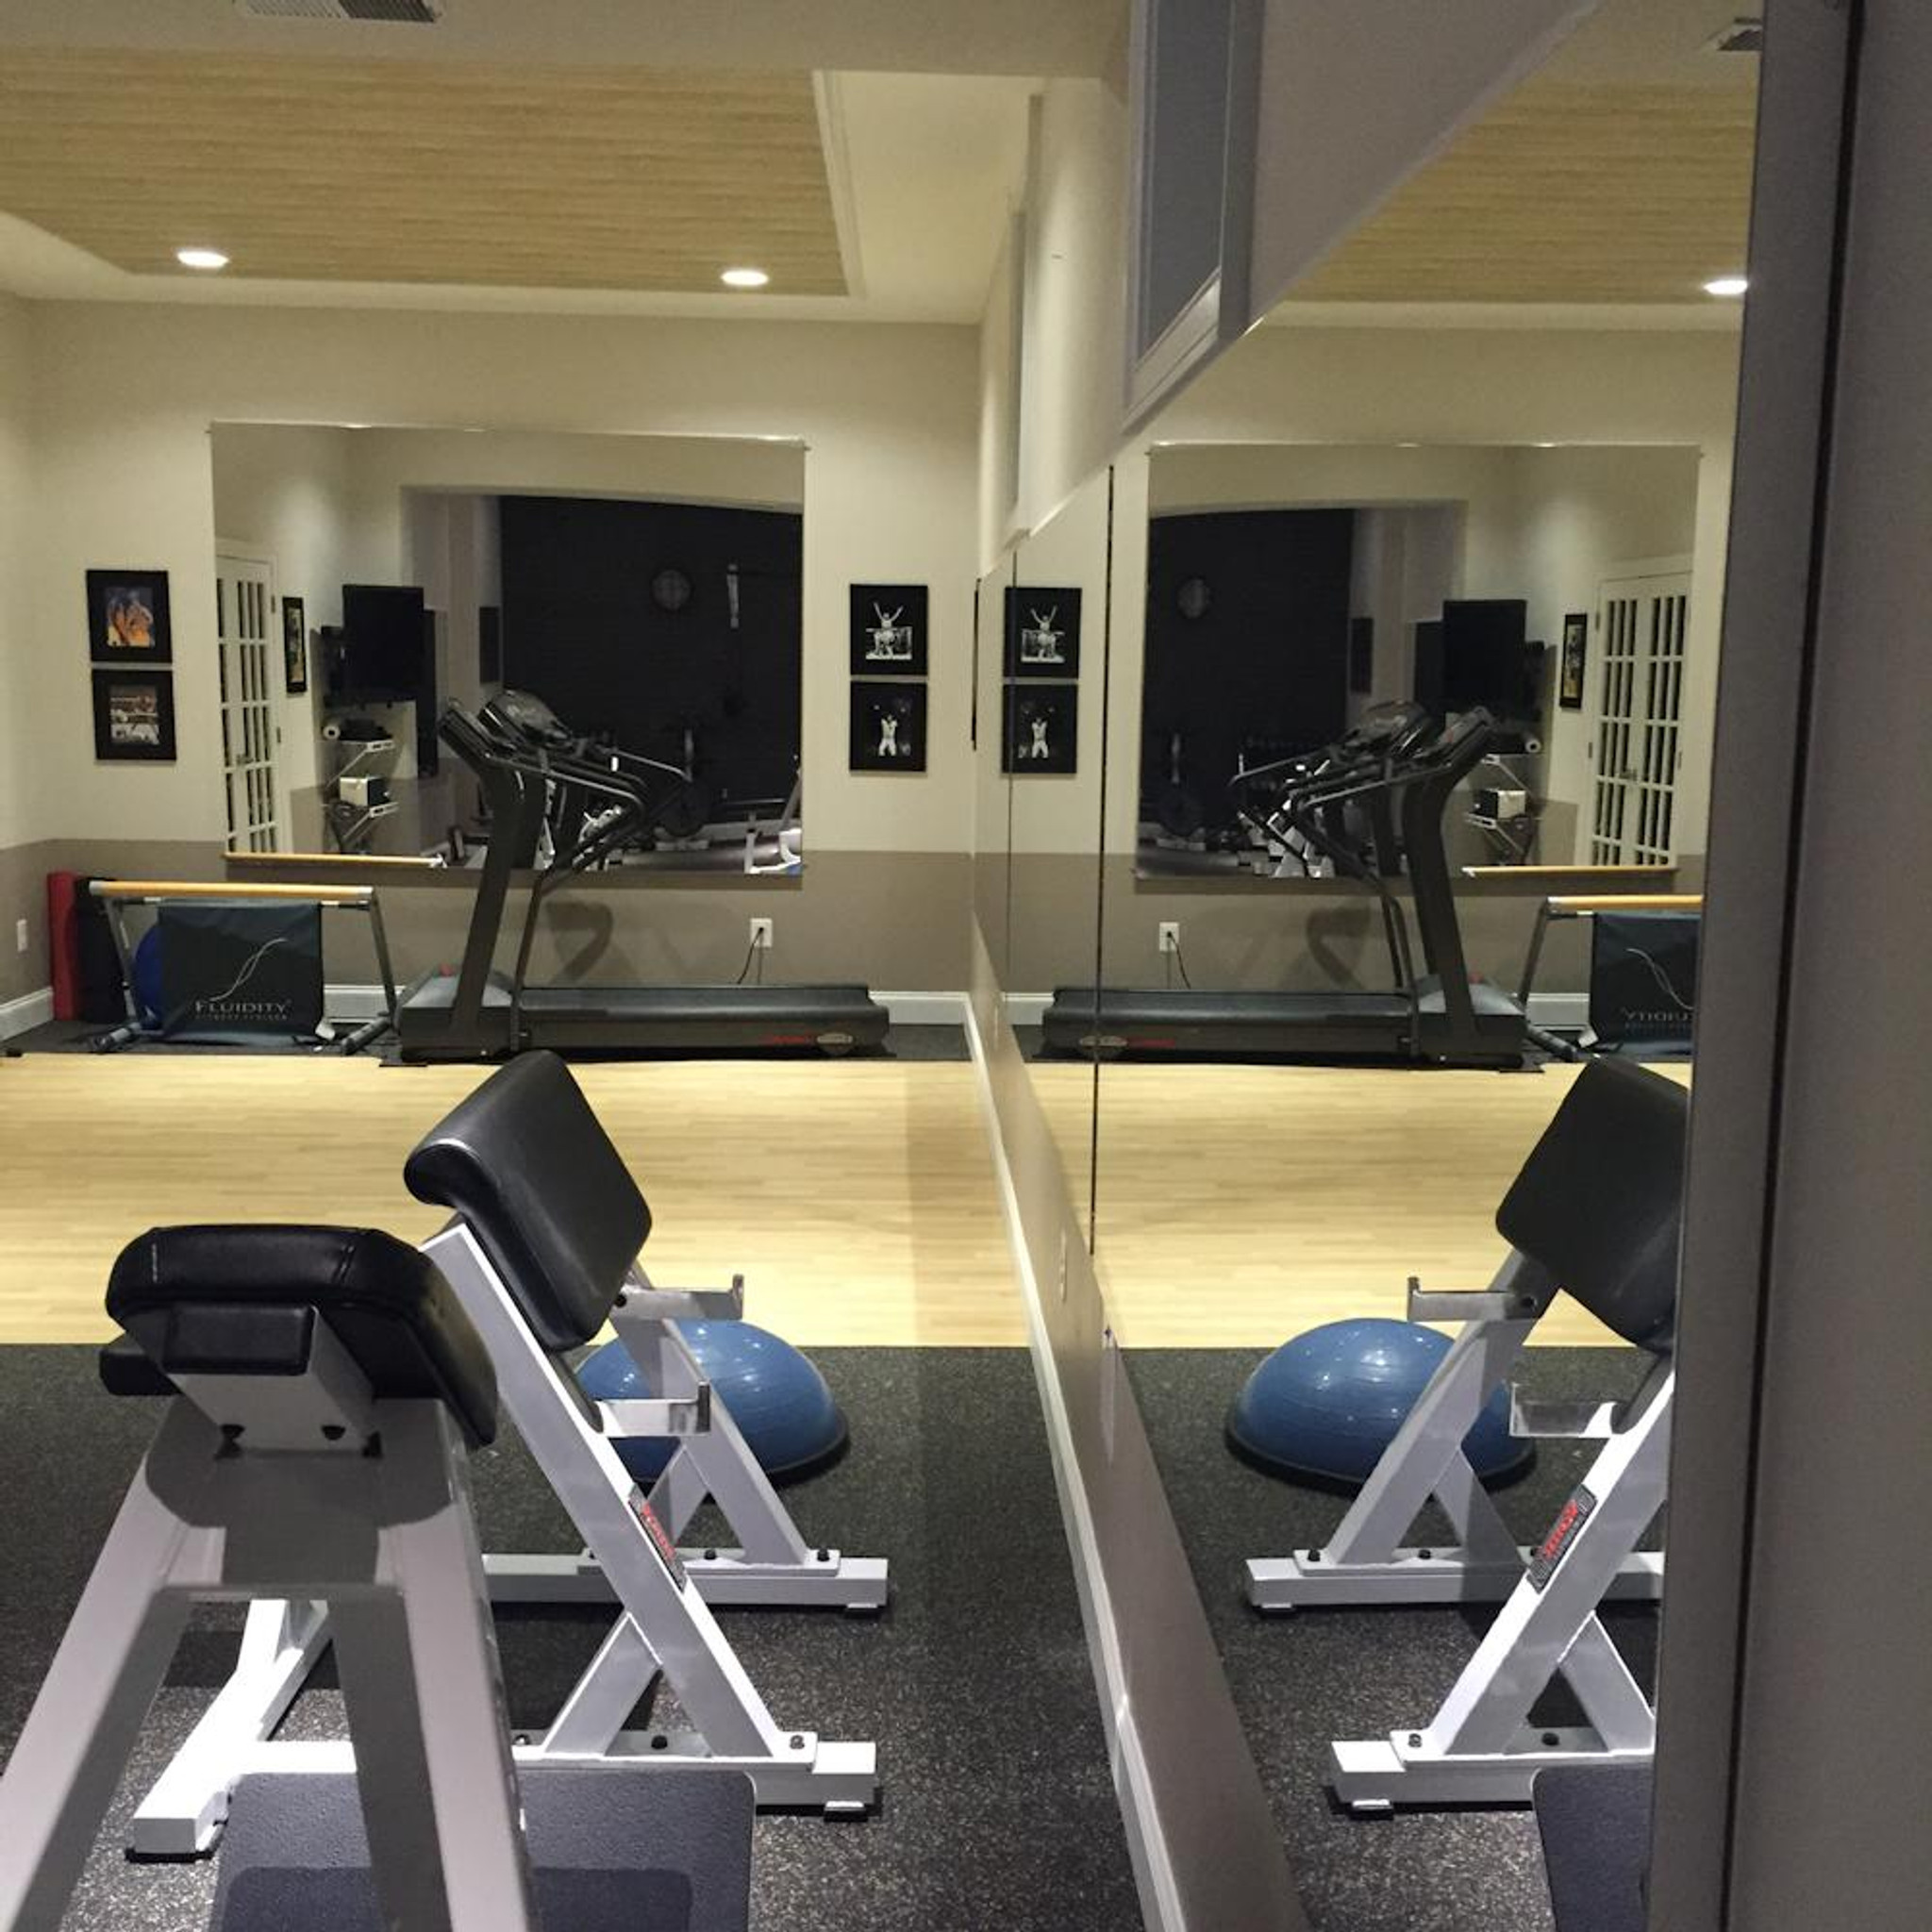 Gym Mirrors Glassless Wall Mounted Gtech Fitness